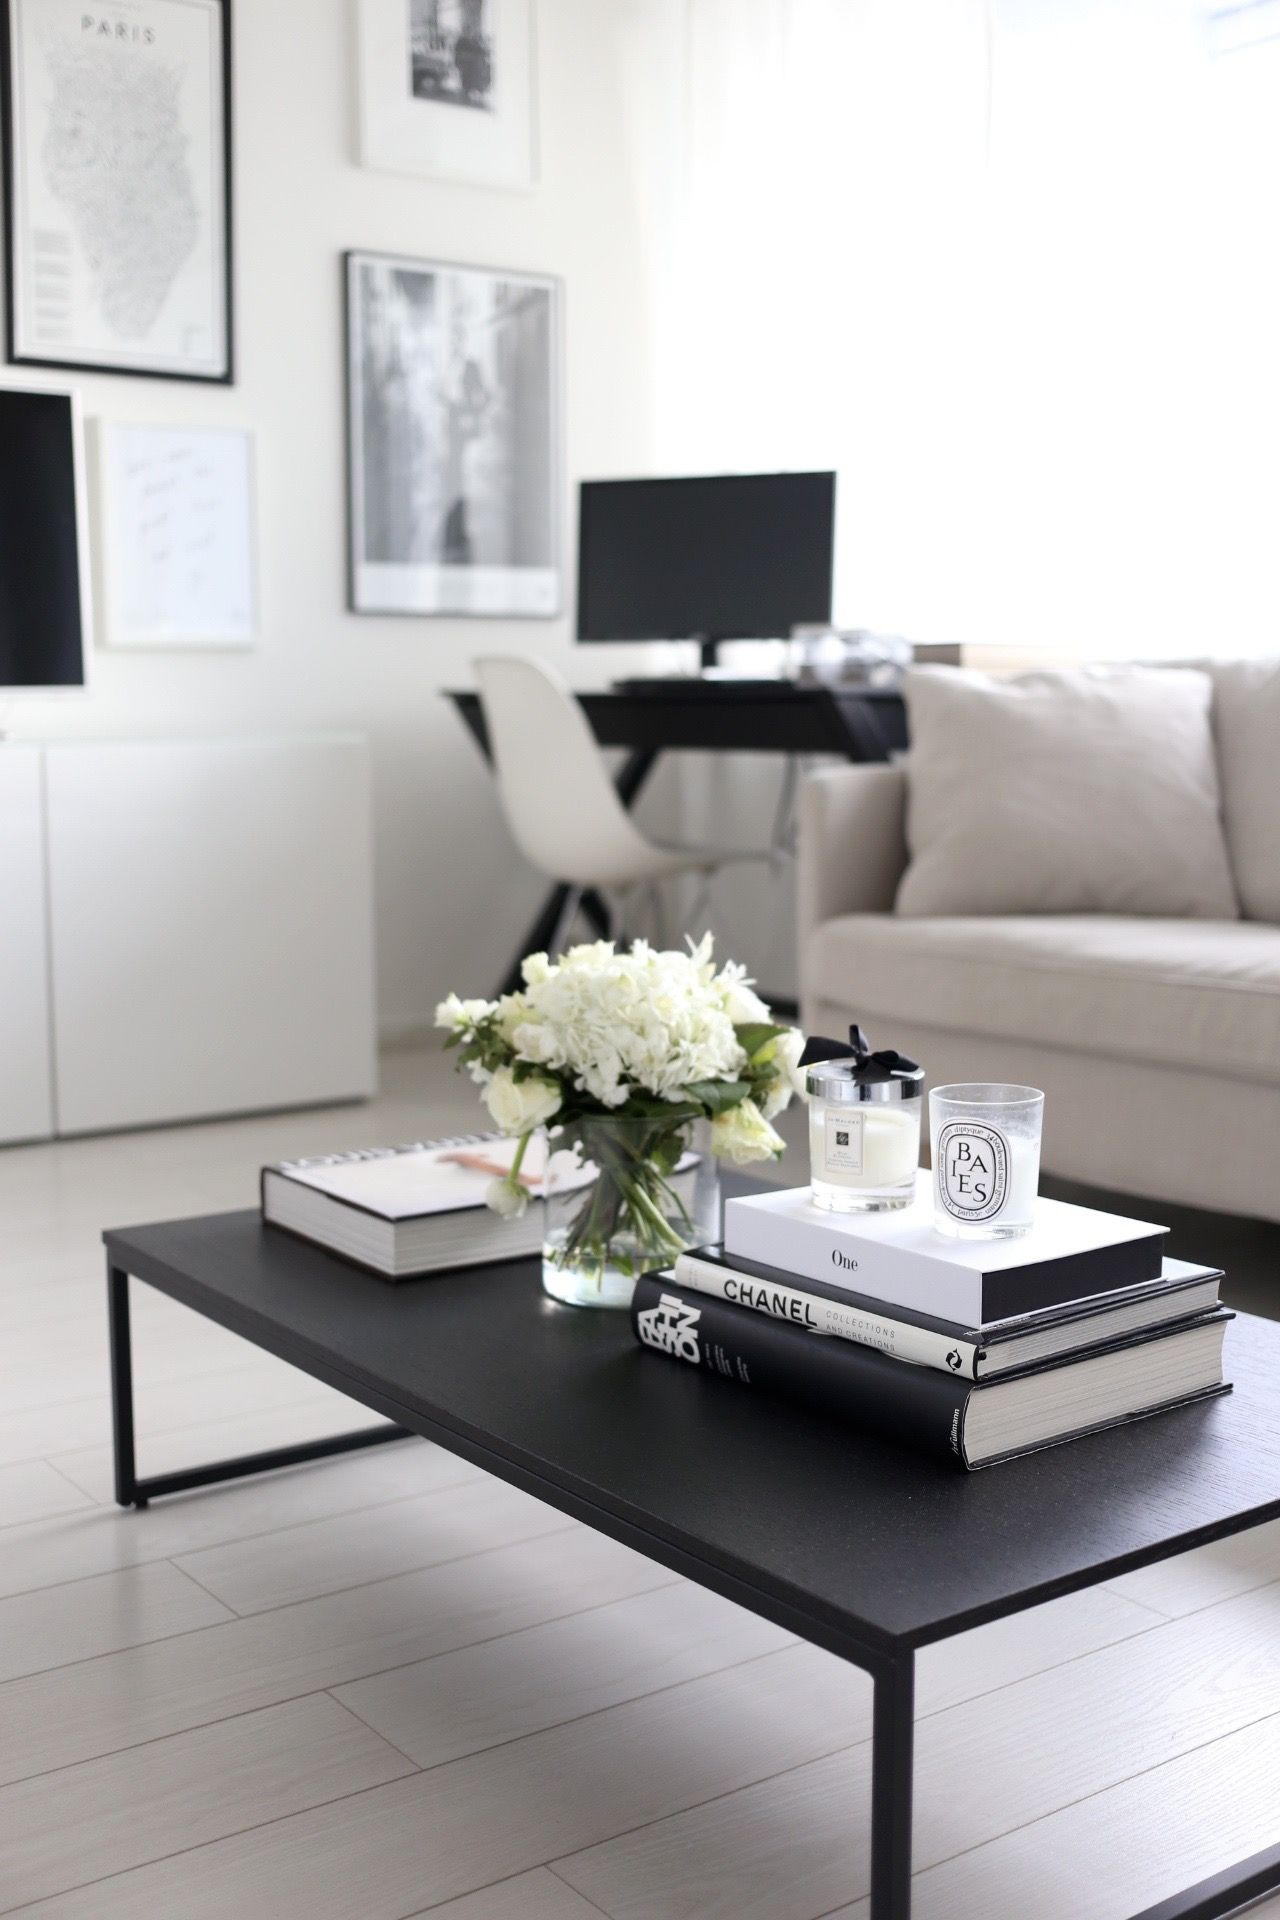 24 brilliant ways to style your coffee table no matter your style